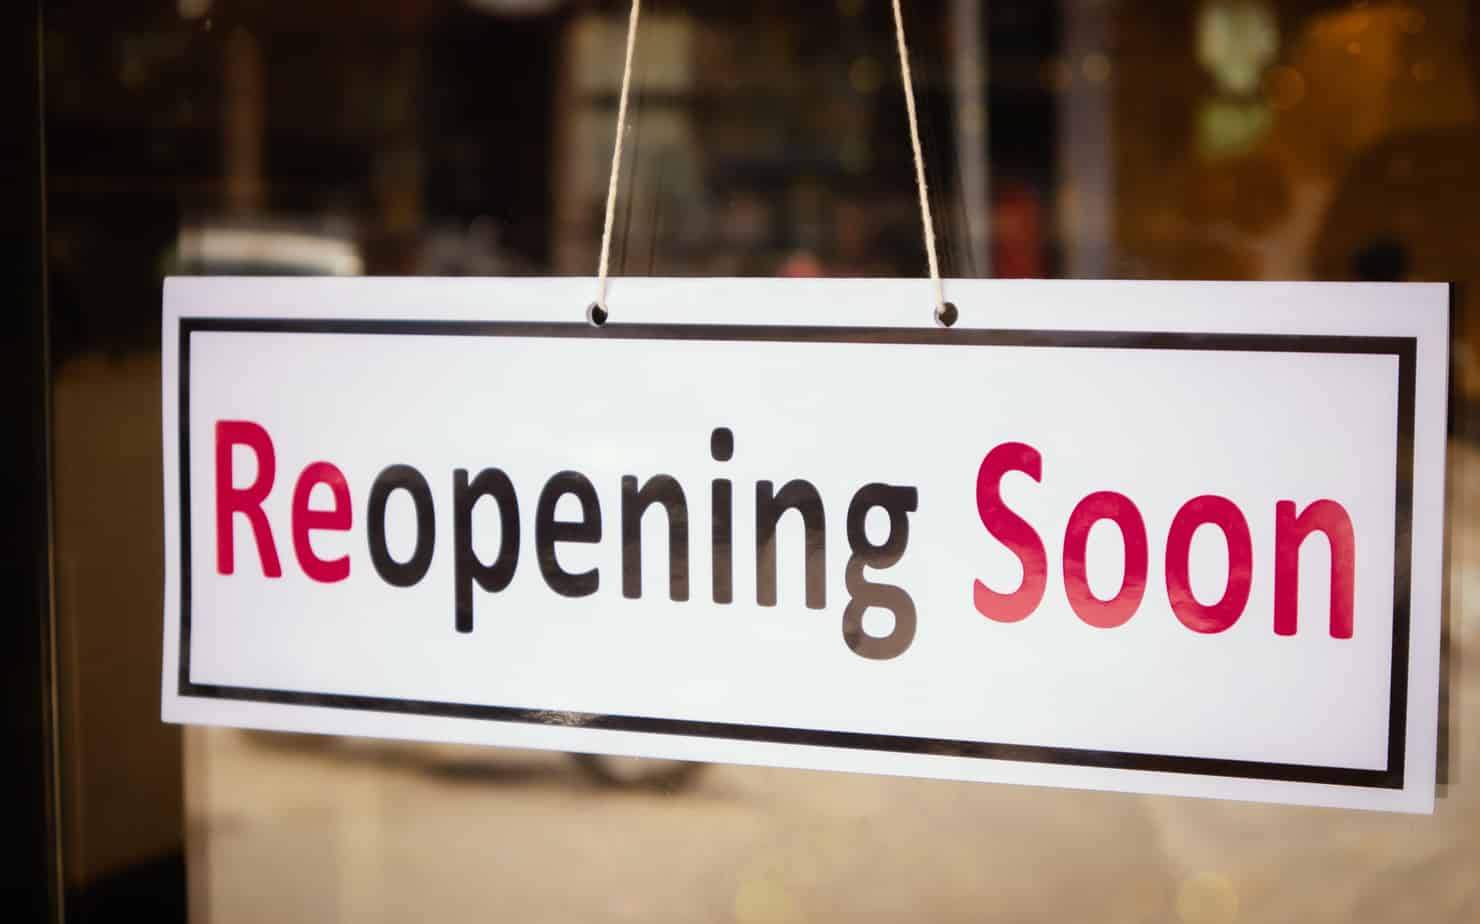 Restaurant merchants are beginning to reopen amidst strict COVID-19 regulations.